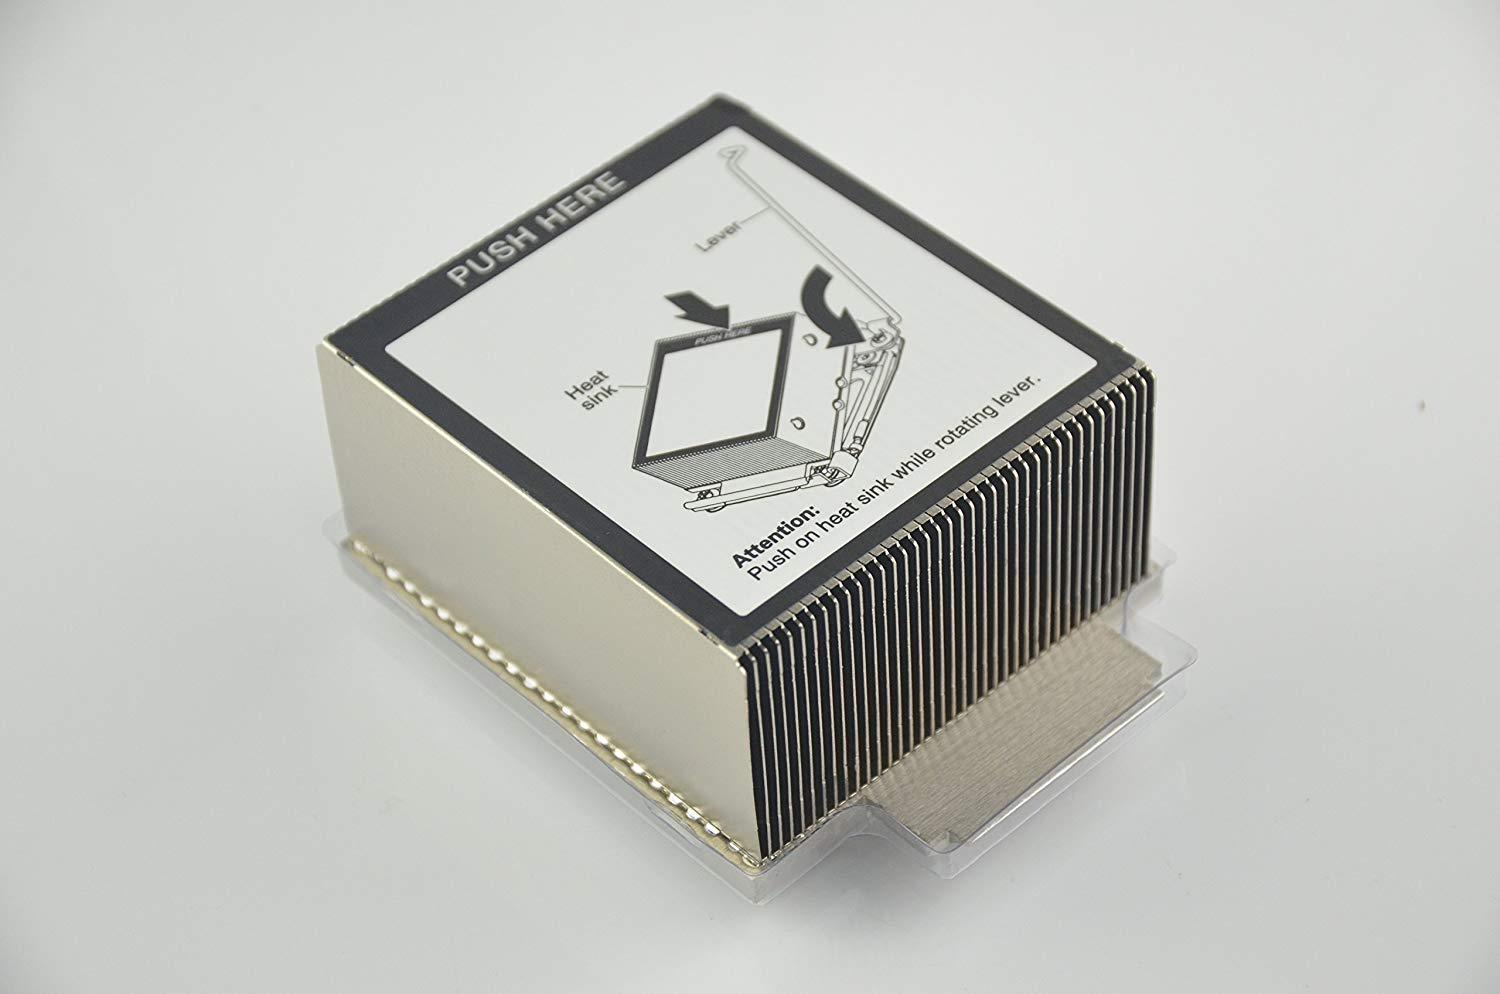 Earthtek Replacement Server Heatsink for IBM X3650m4 X 3650 m4